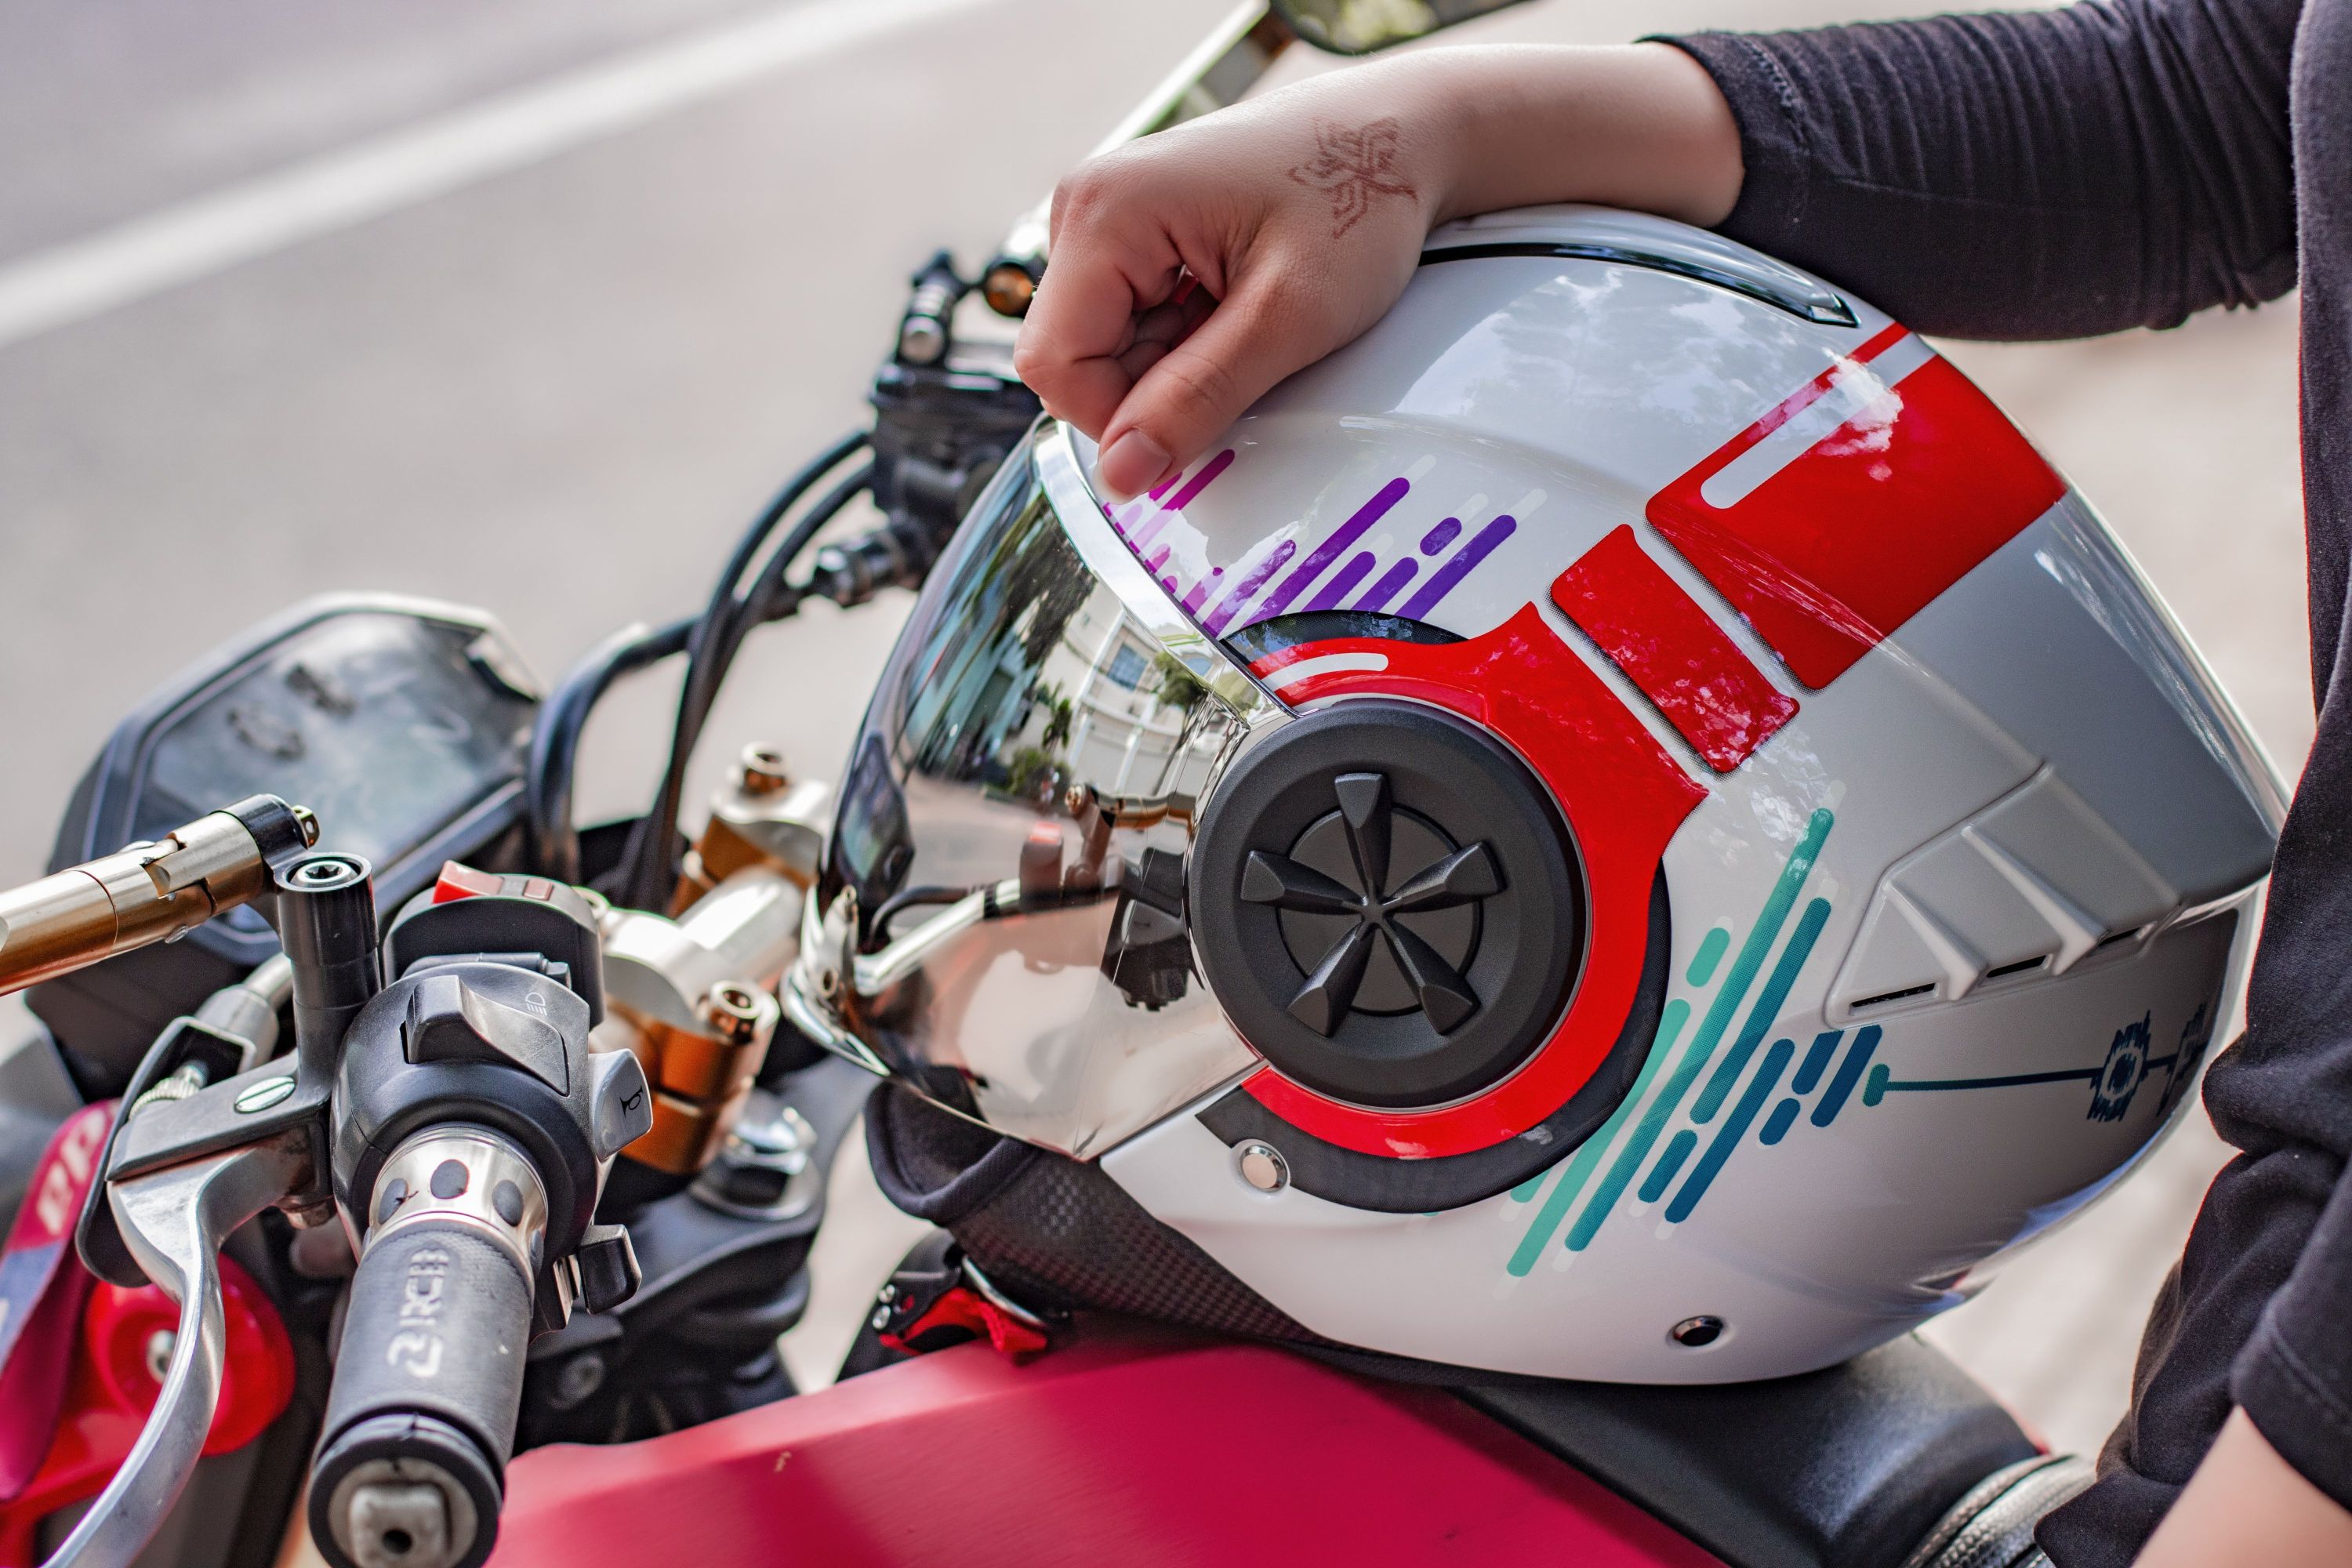 helmets and leathers